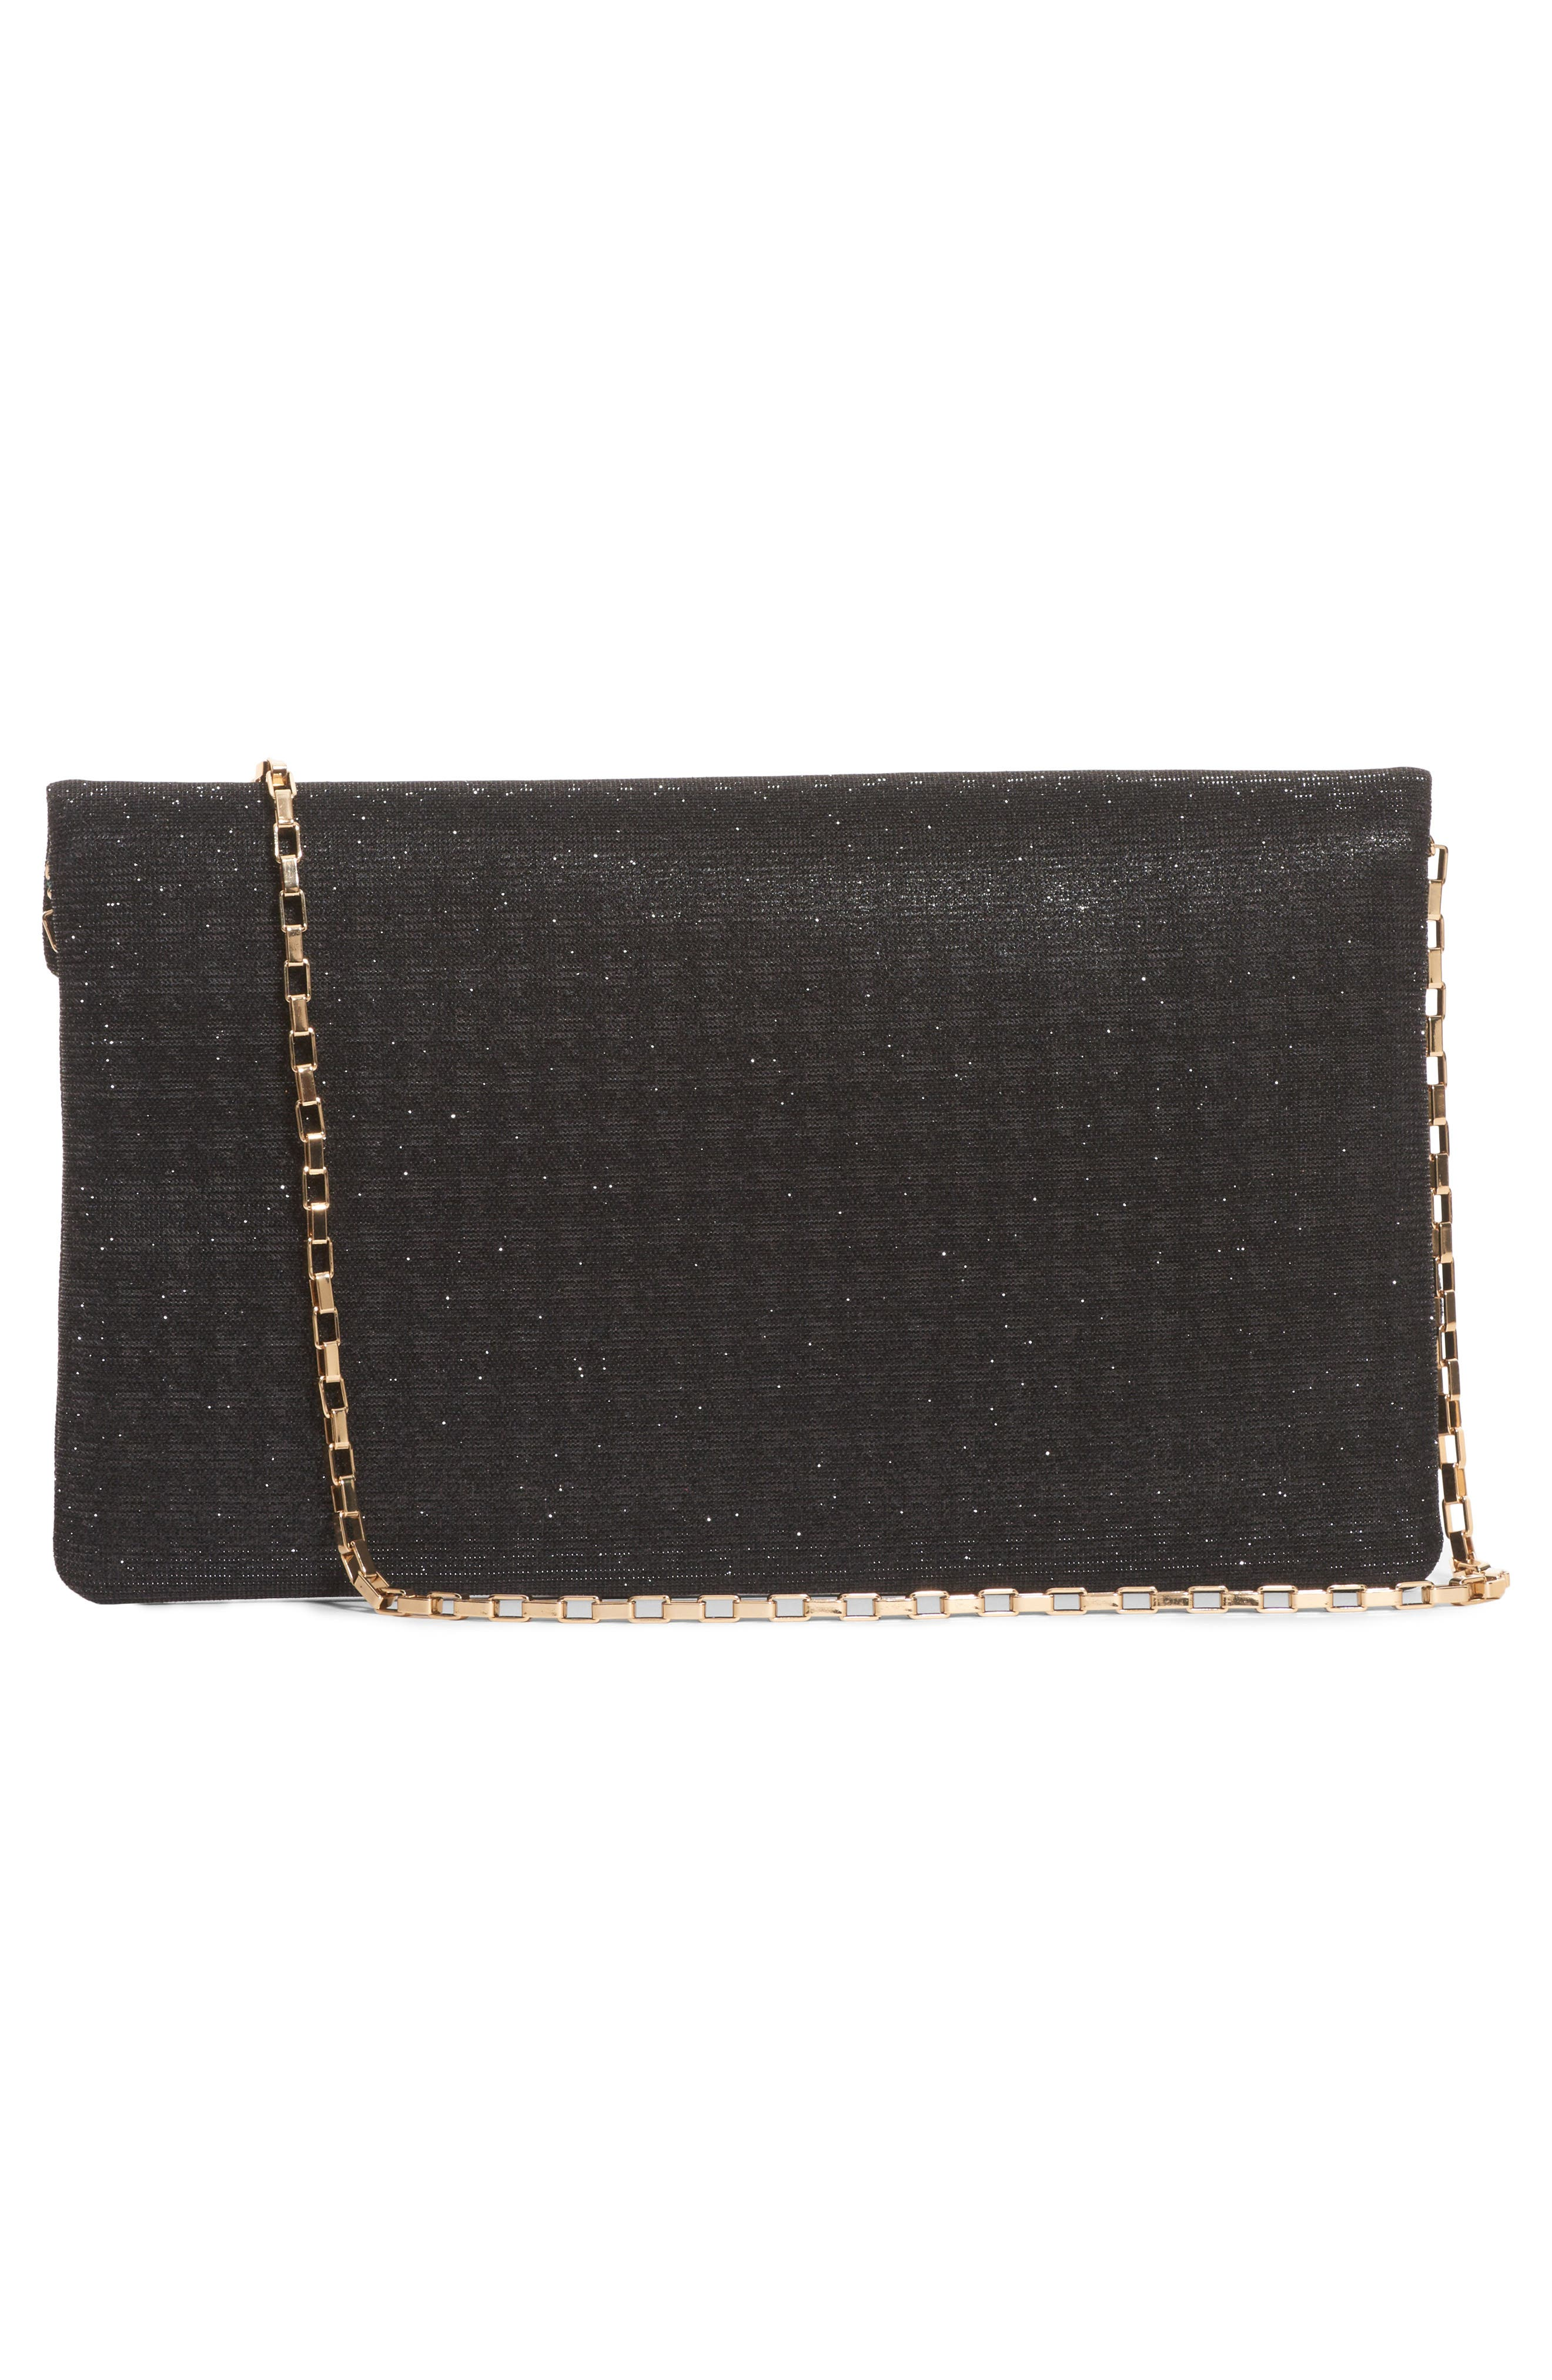 Hashtag Foldover Clutch,                             Alternate thumbnail 3, color,                             002